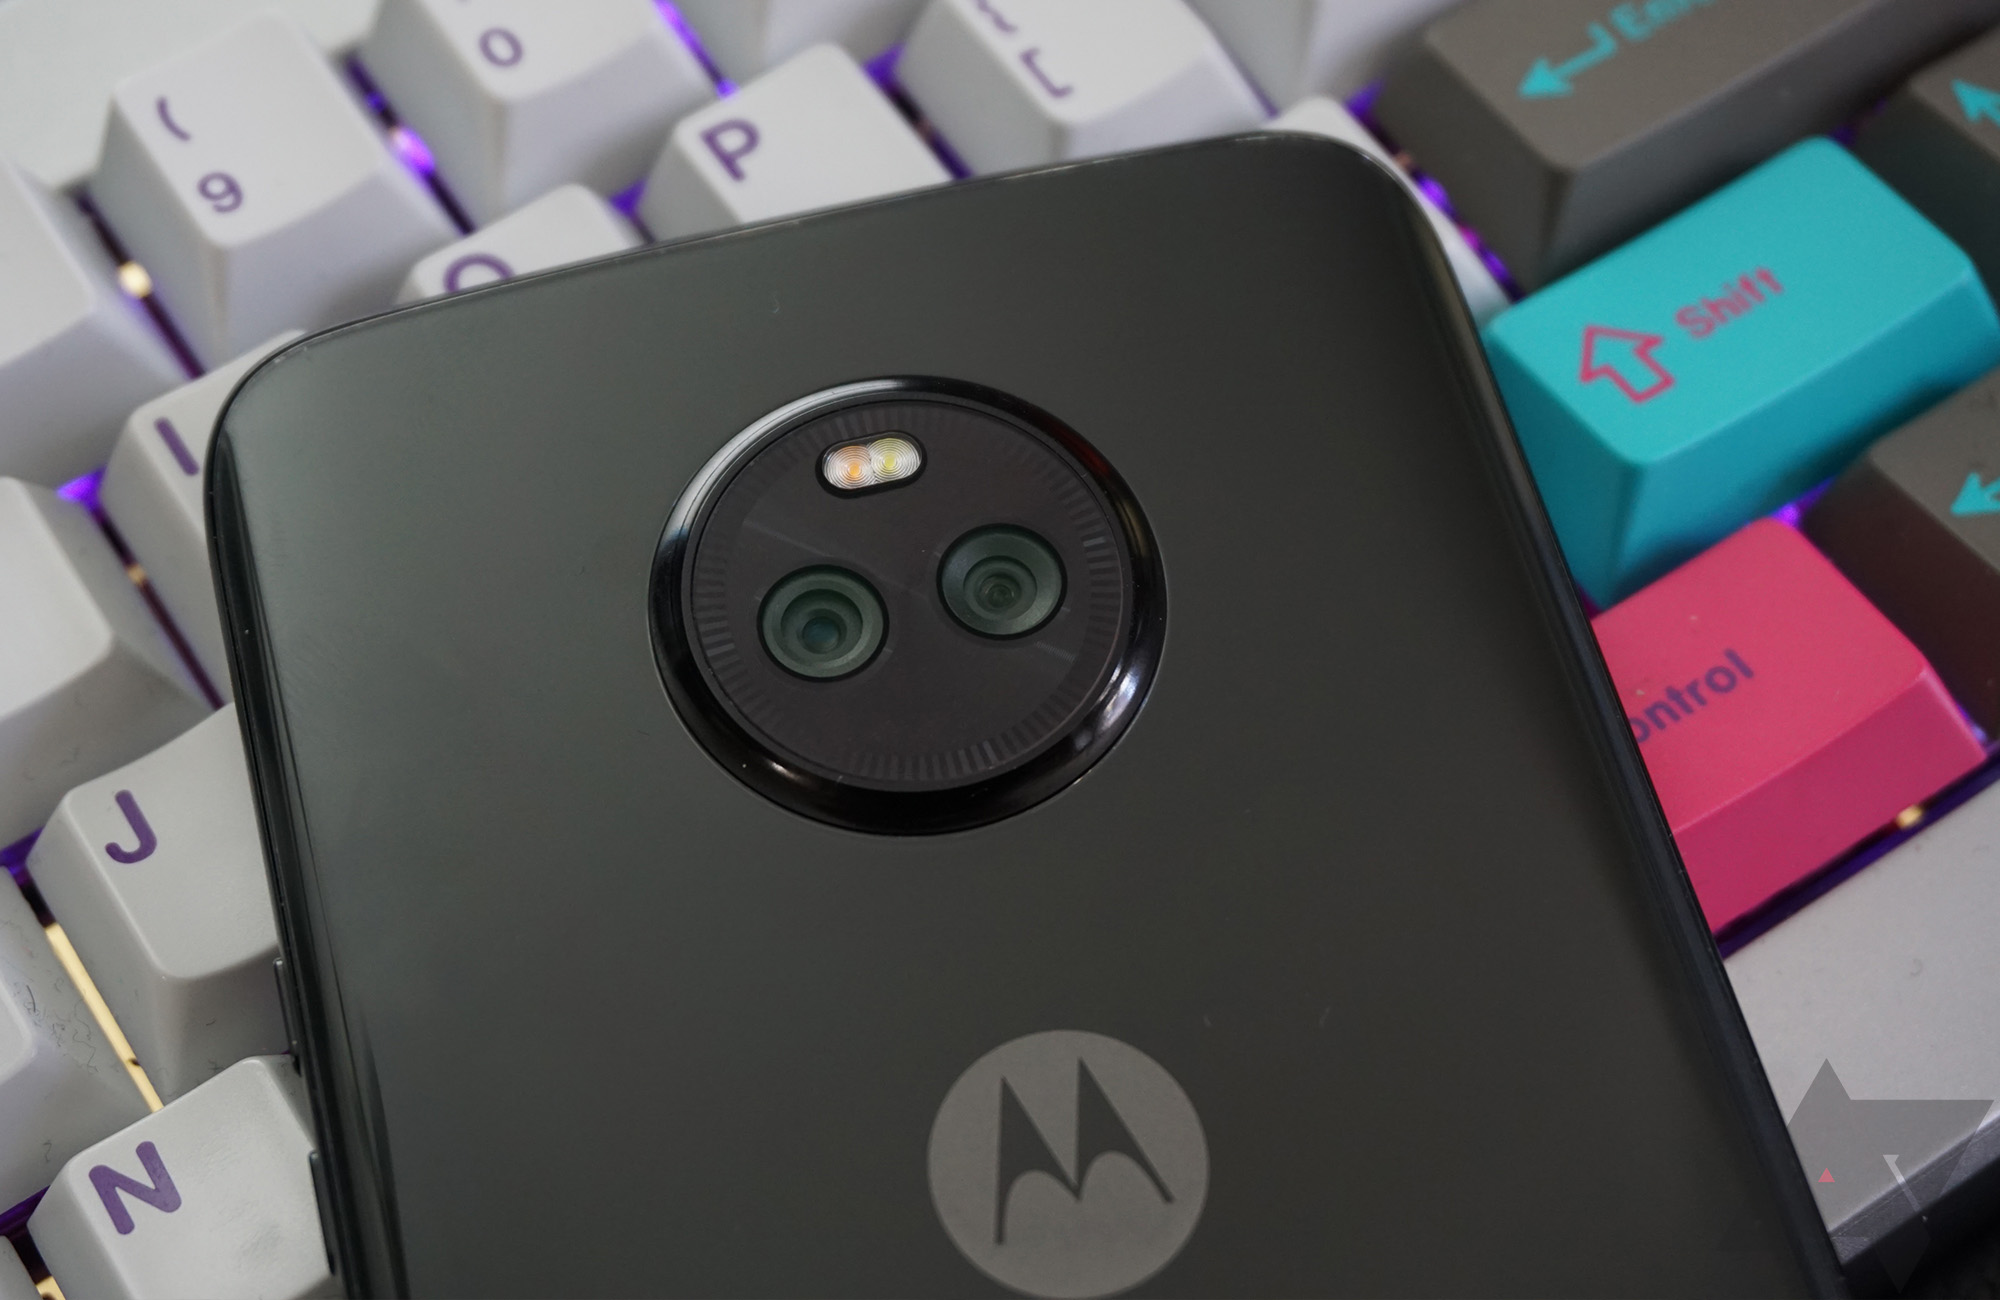 Moto X4 (Android One edition) review: This is not the Moto X